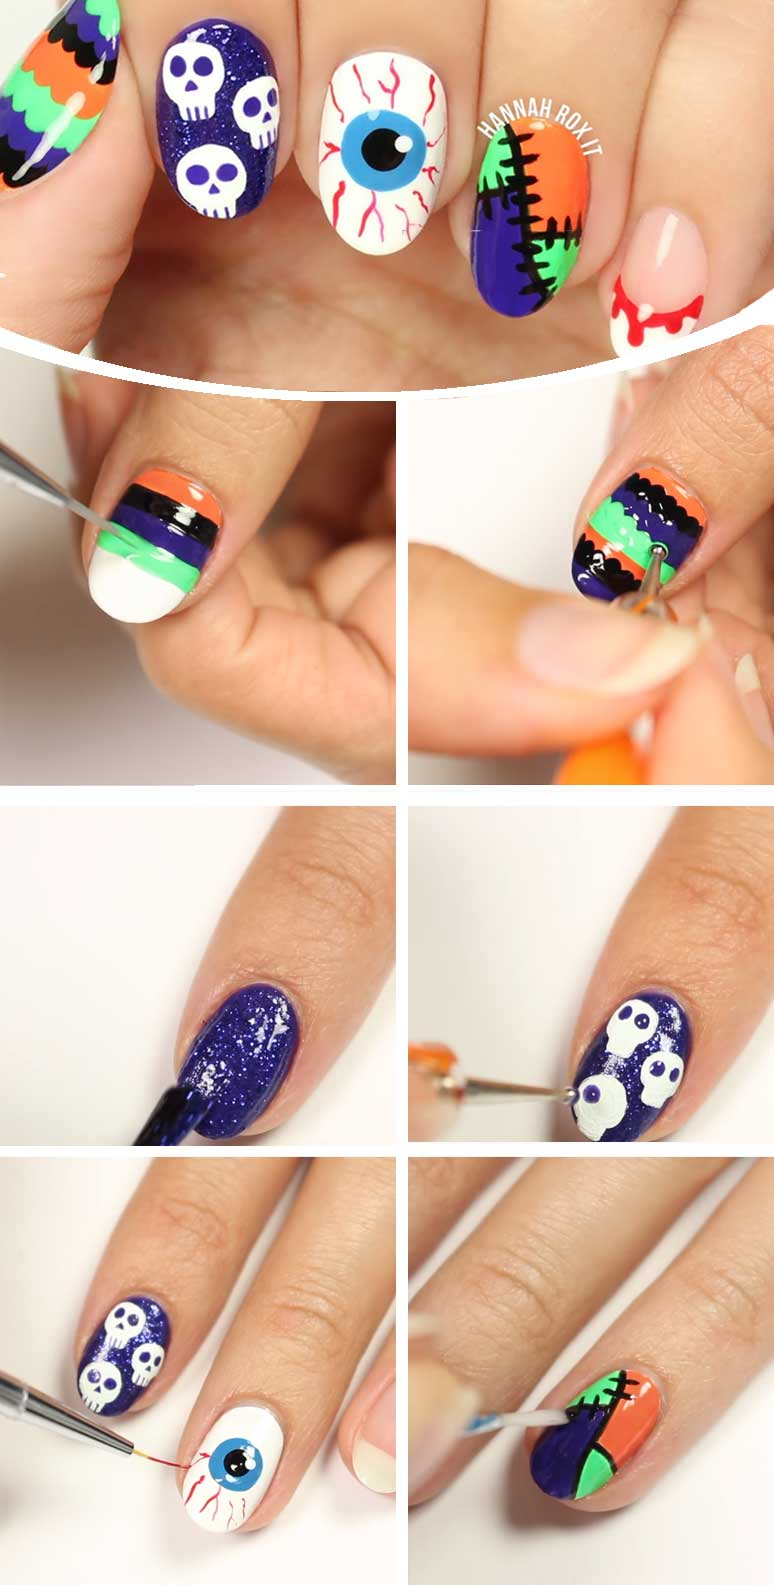 easy flower nail designs, easy diy halloween makeup, halloween cat nail designs, fun halloween nail designs, easy diy halloween costume, easy do yourself nail designs, halloween ghost nail designs, pink halloween nail designs, do it yourself halloween nail designs, easy food nail designs, easy home nail designs, opi halloween nail designs, homemade halloween nail designs, easy 4th of july nail designs, easy christmas nail designs, easy pumpkin nail designs, easy valentine's day nail designs, cool halloween nail designs, quick and easy nail designs, easy easter nail designs, on easy diy halloween nail designs